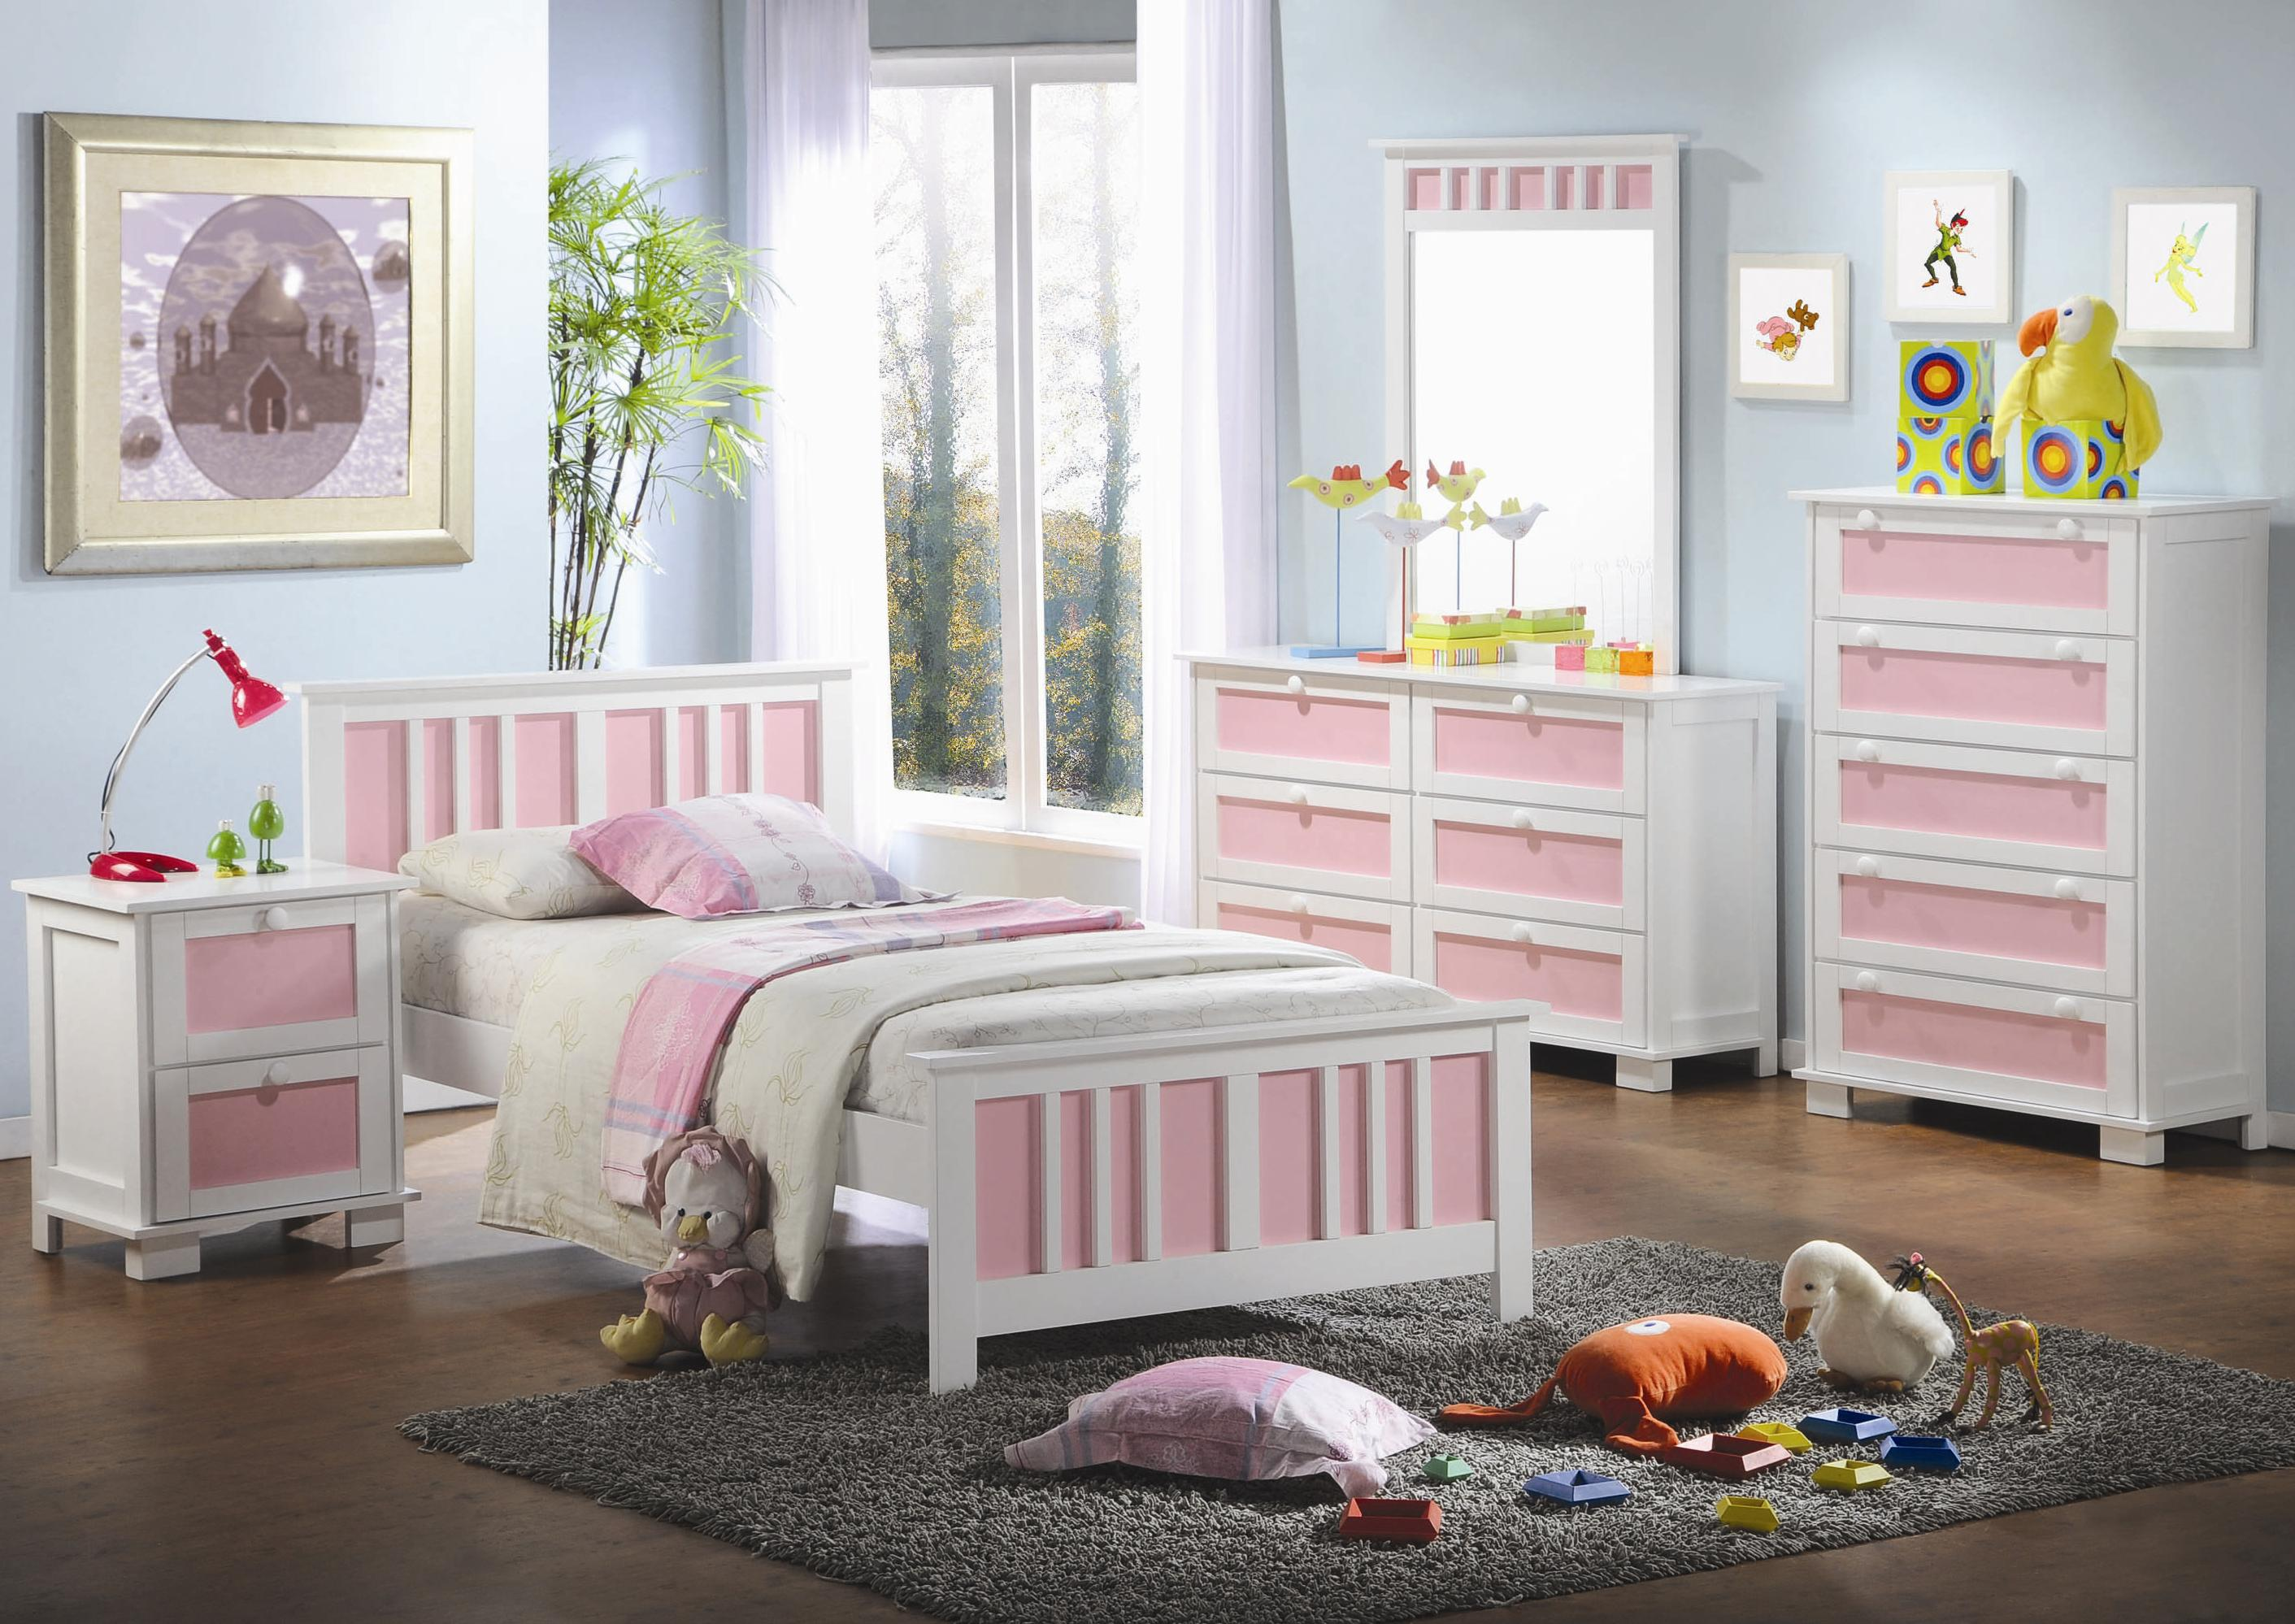 Marvellous Small Child Bedroom Furniture King Queen Sets Designs Kids Chairs Simple Cute Bedrooms Apartment Layout Ideas Elegant Decorating Bathroom Apppie Org